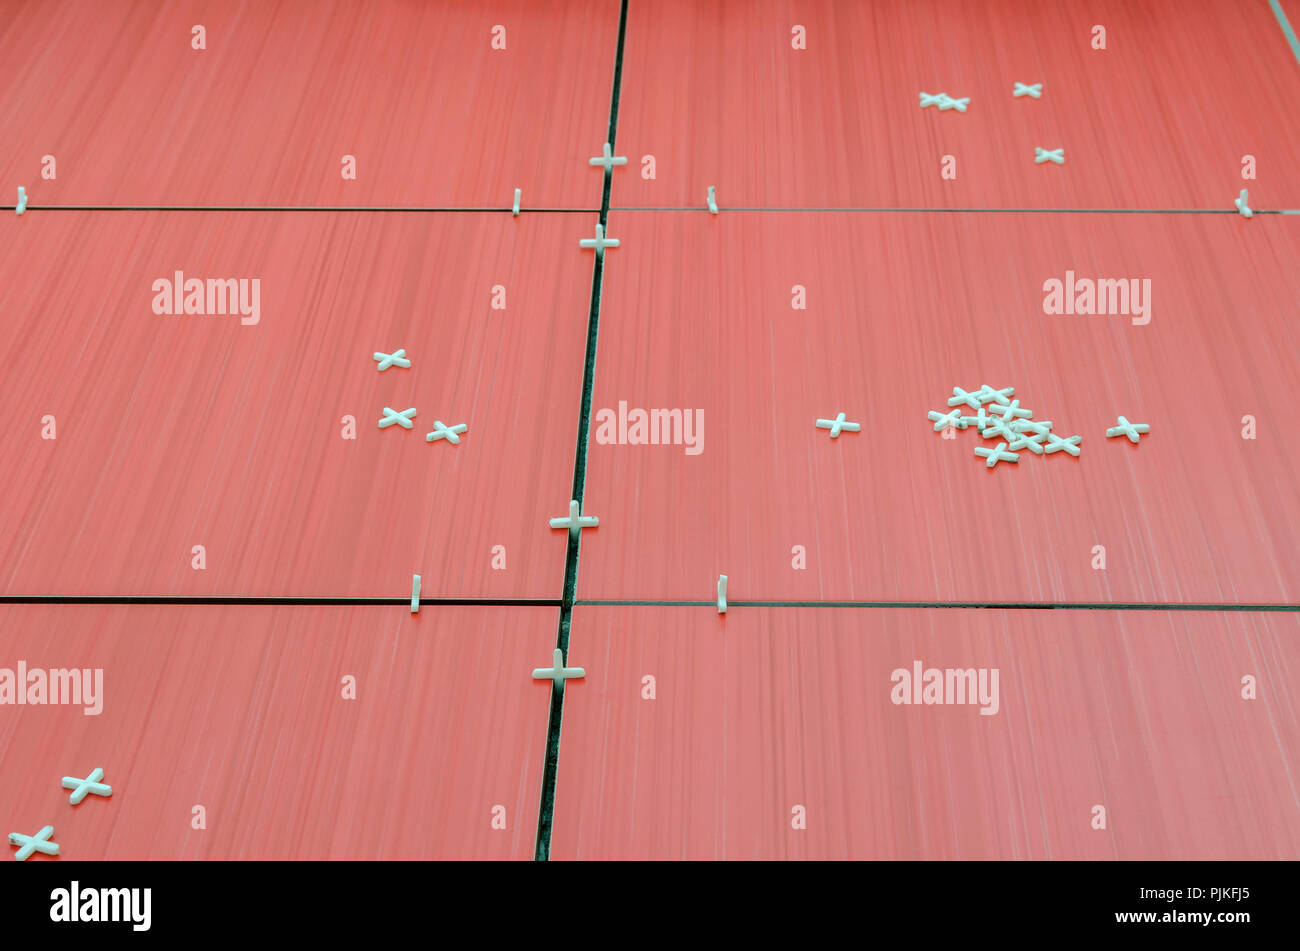 Tile Spacers Stock Photos Tile Spacers Stock Images Alamy